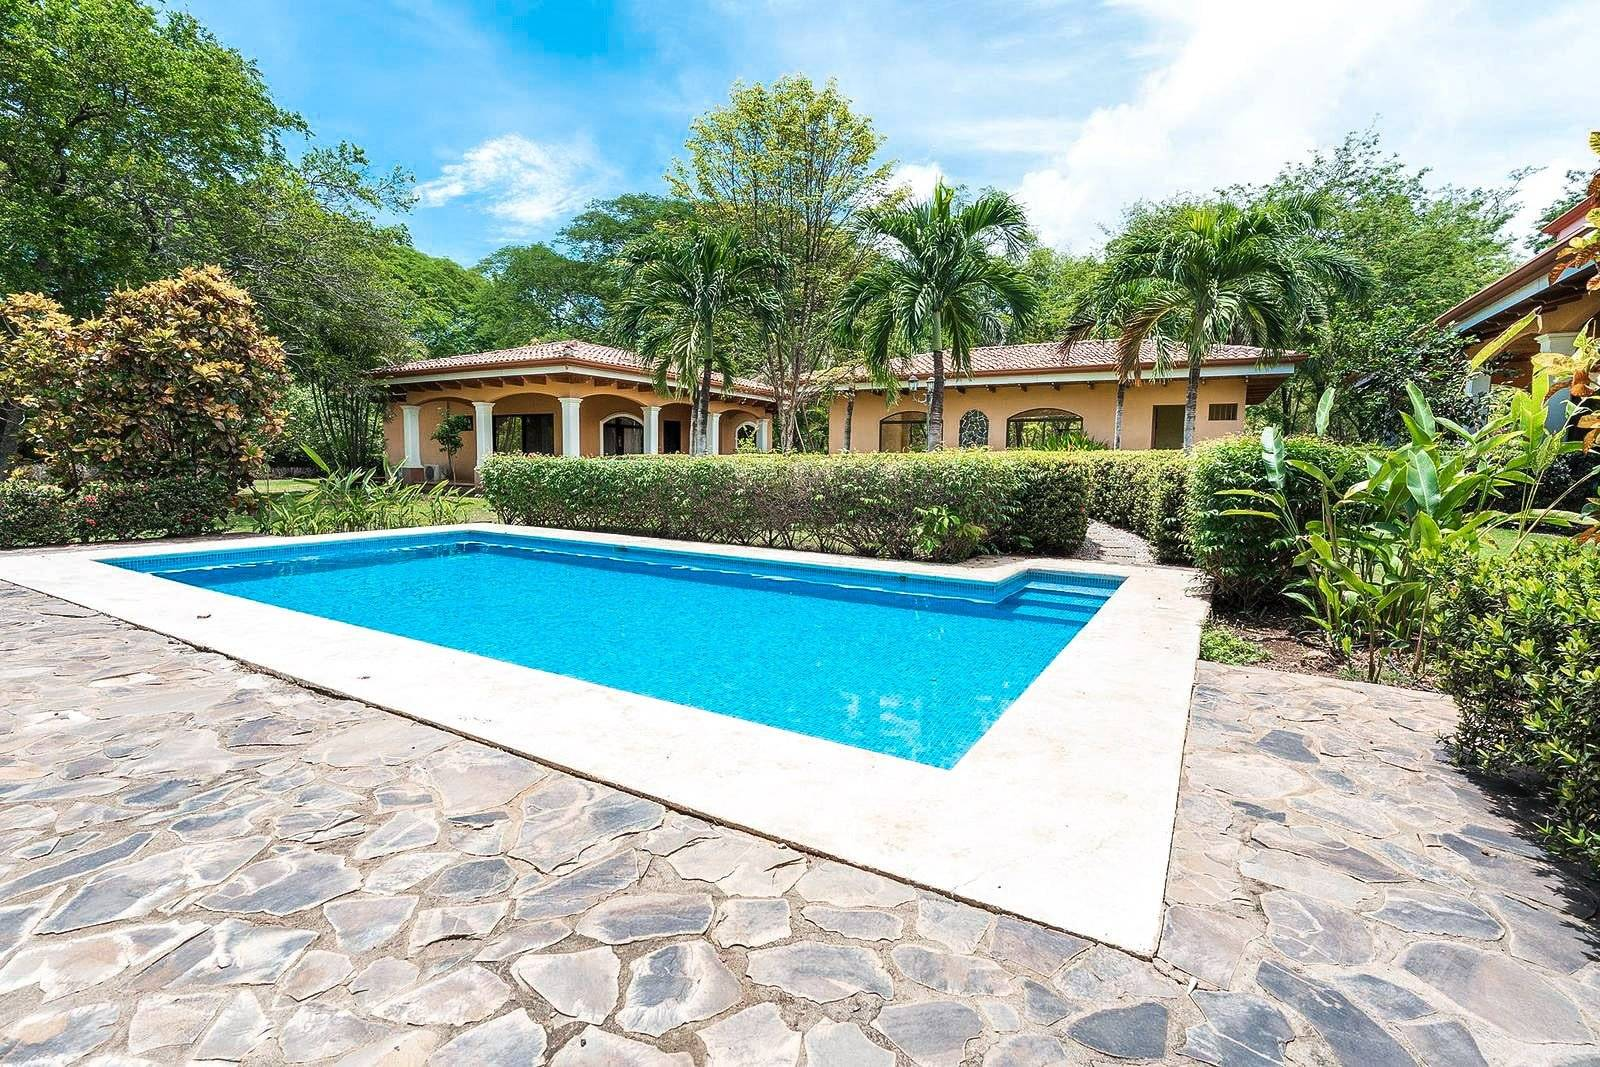 Catalina Cove 3 - vacation rentals in Conchal Beach